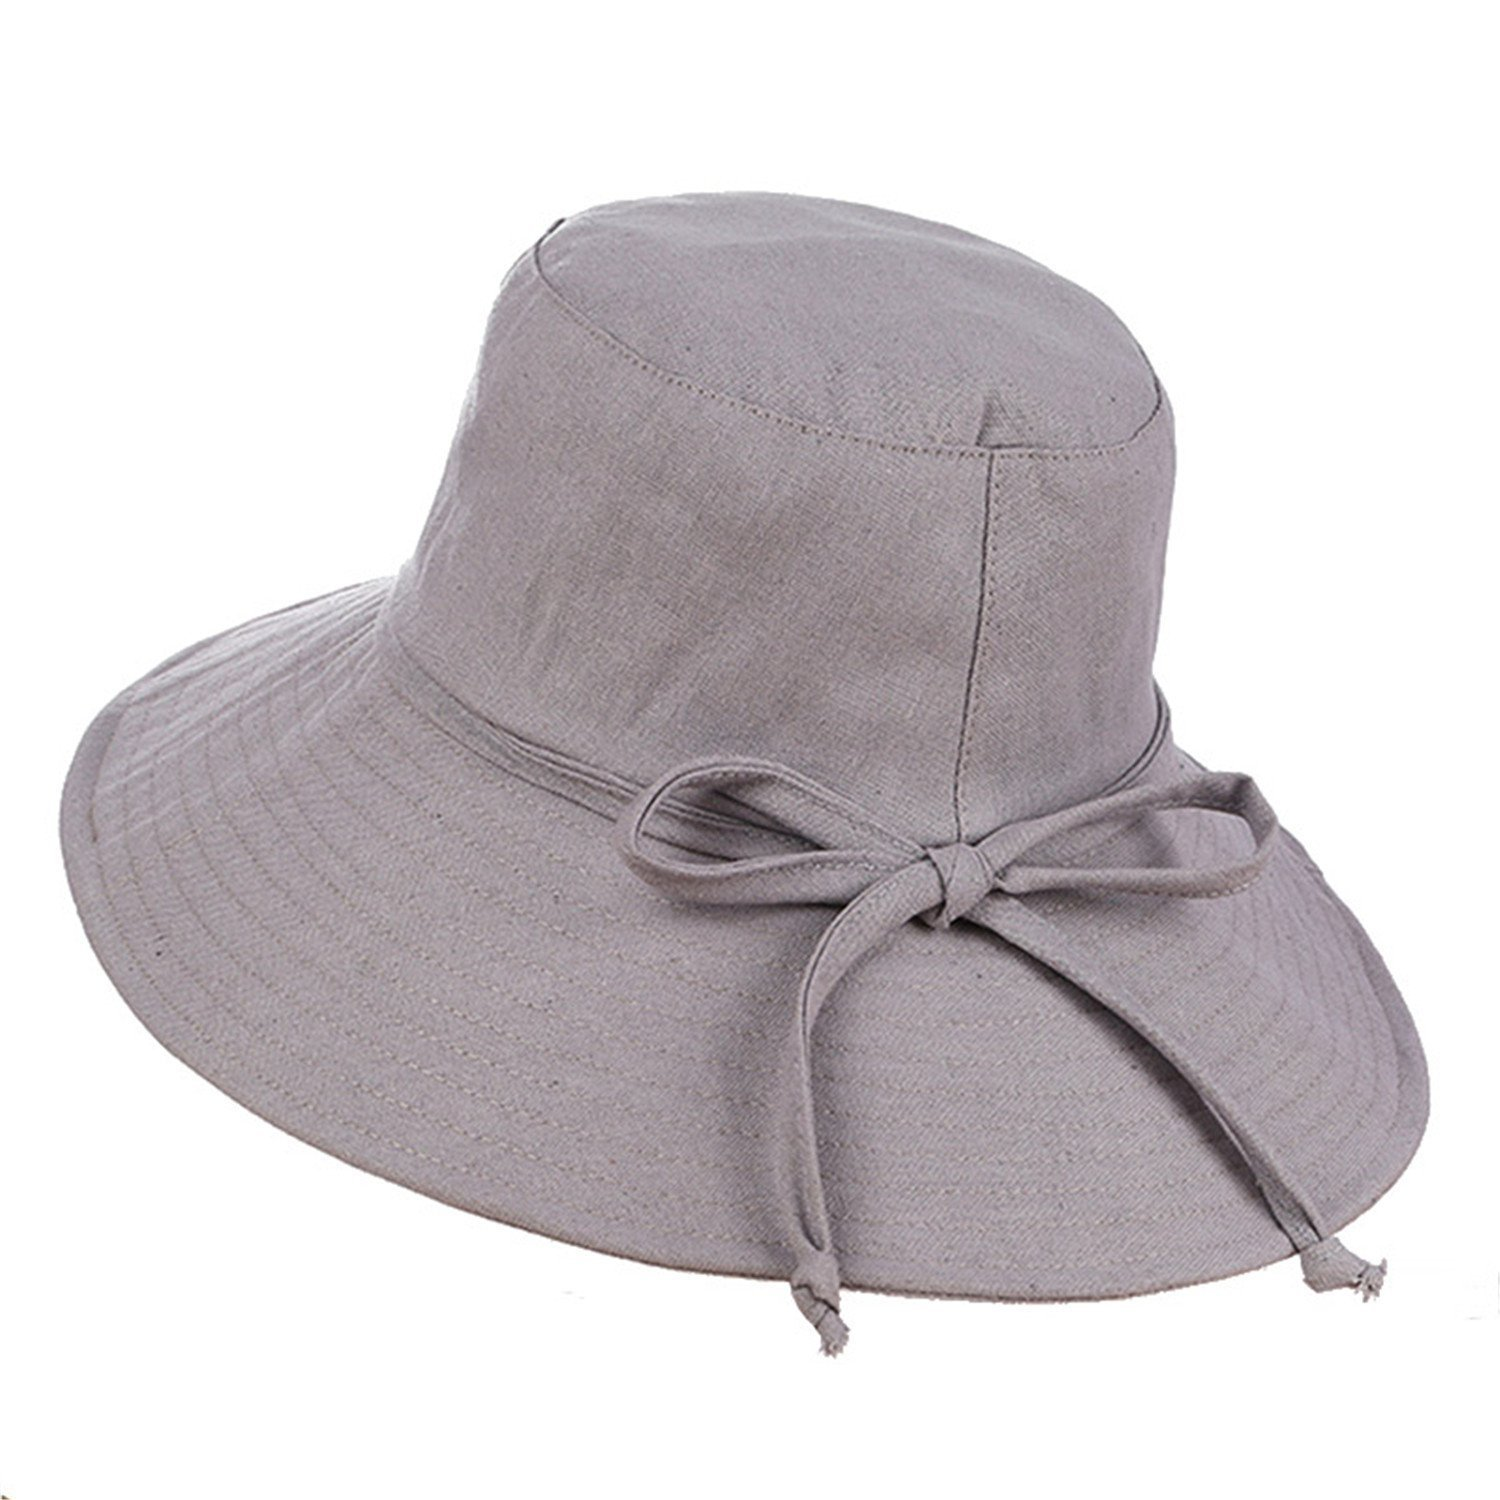 Mainstream Summer Hat Wide Brim Sun Hats For Women Foldable Beach Caps 5 Solid Colors,OneSize,Gray